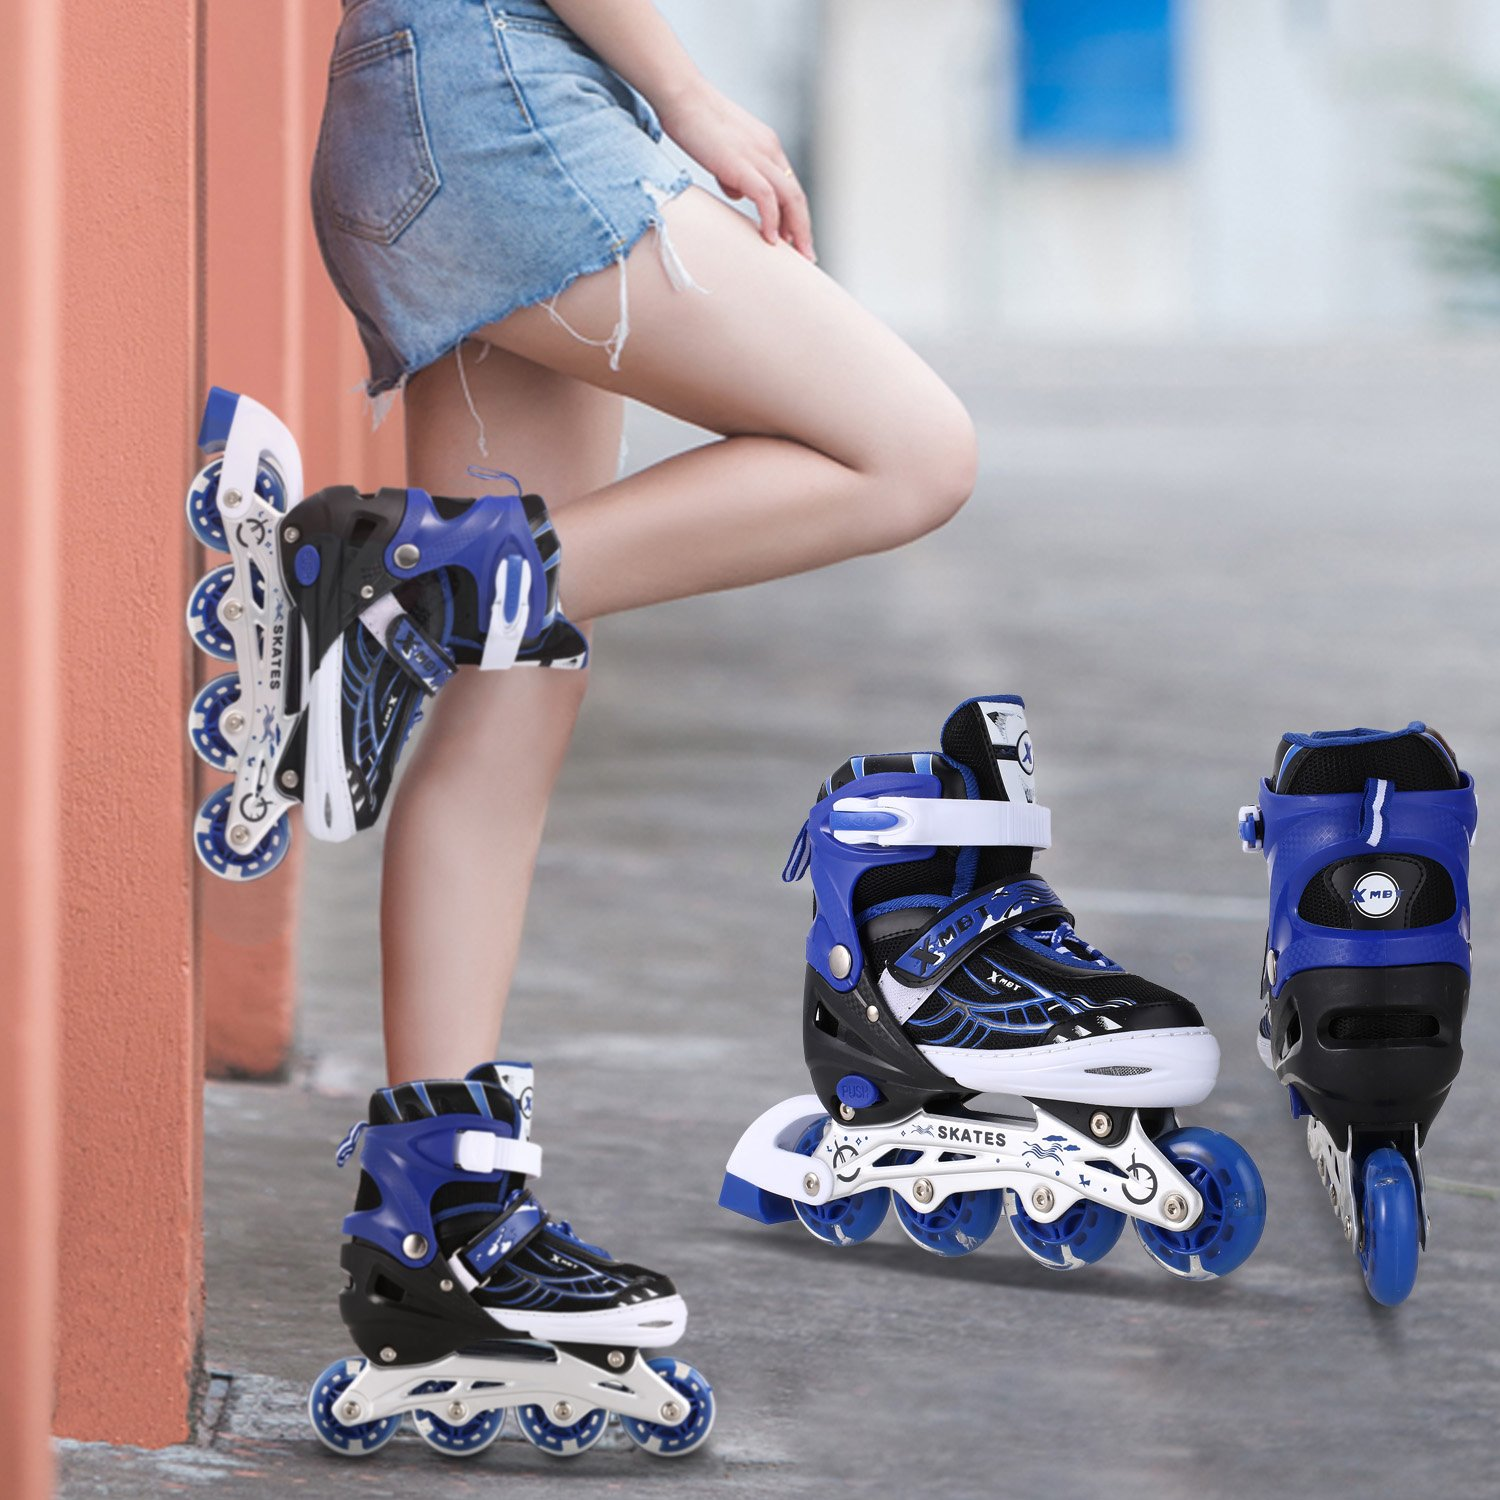 Anfan 3 Sizes Adjustable Inline Skates Adults Kids Rollerblades with Breathable Mesh Eight Illuminating Wheels Aluminum Frame(US Stock) (Blue, US 5-8)